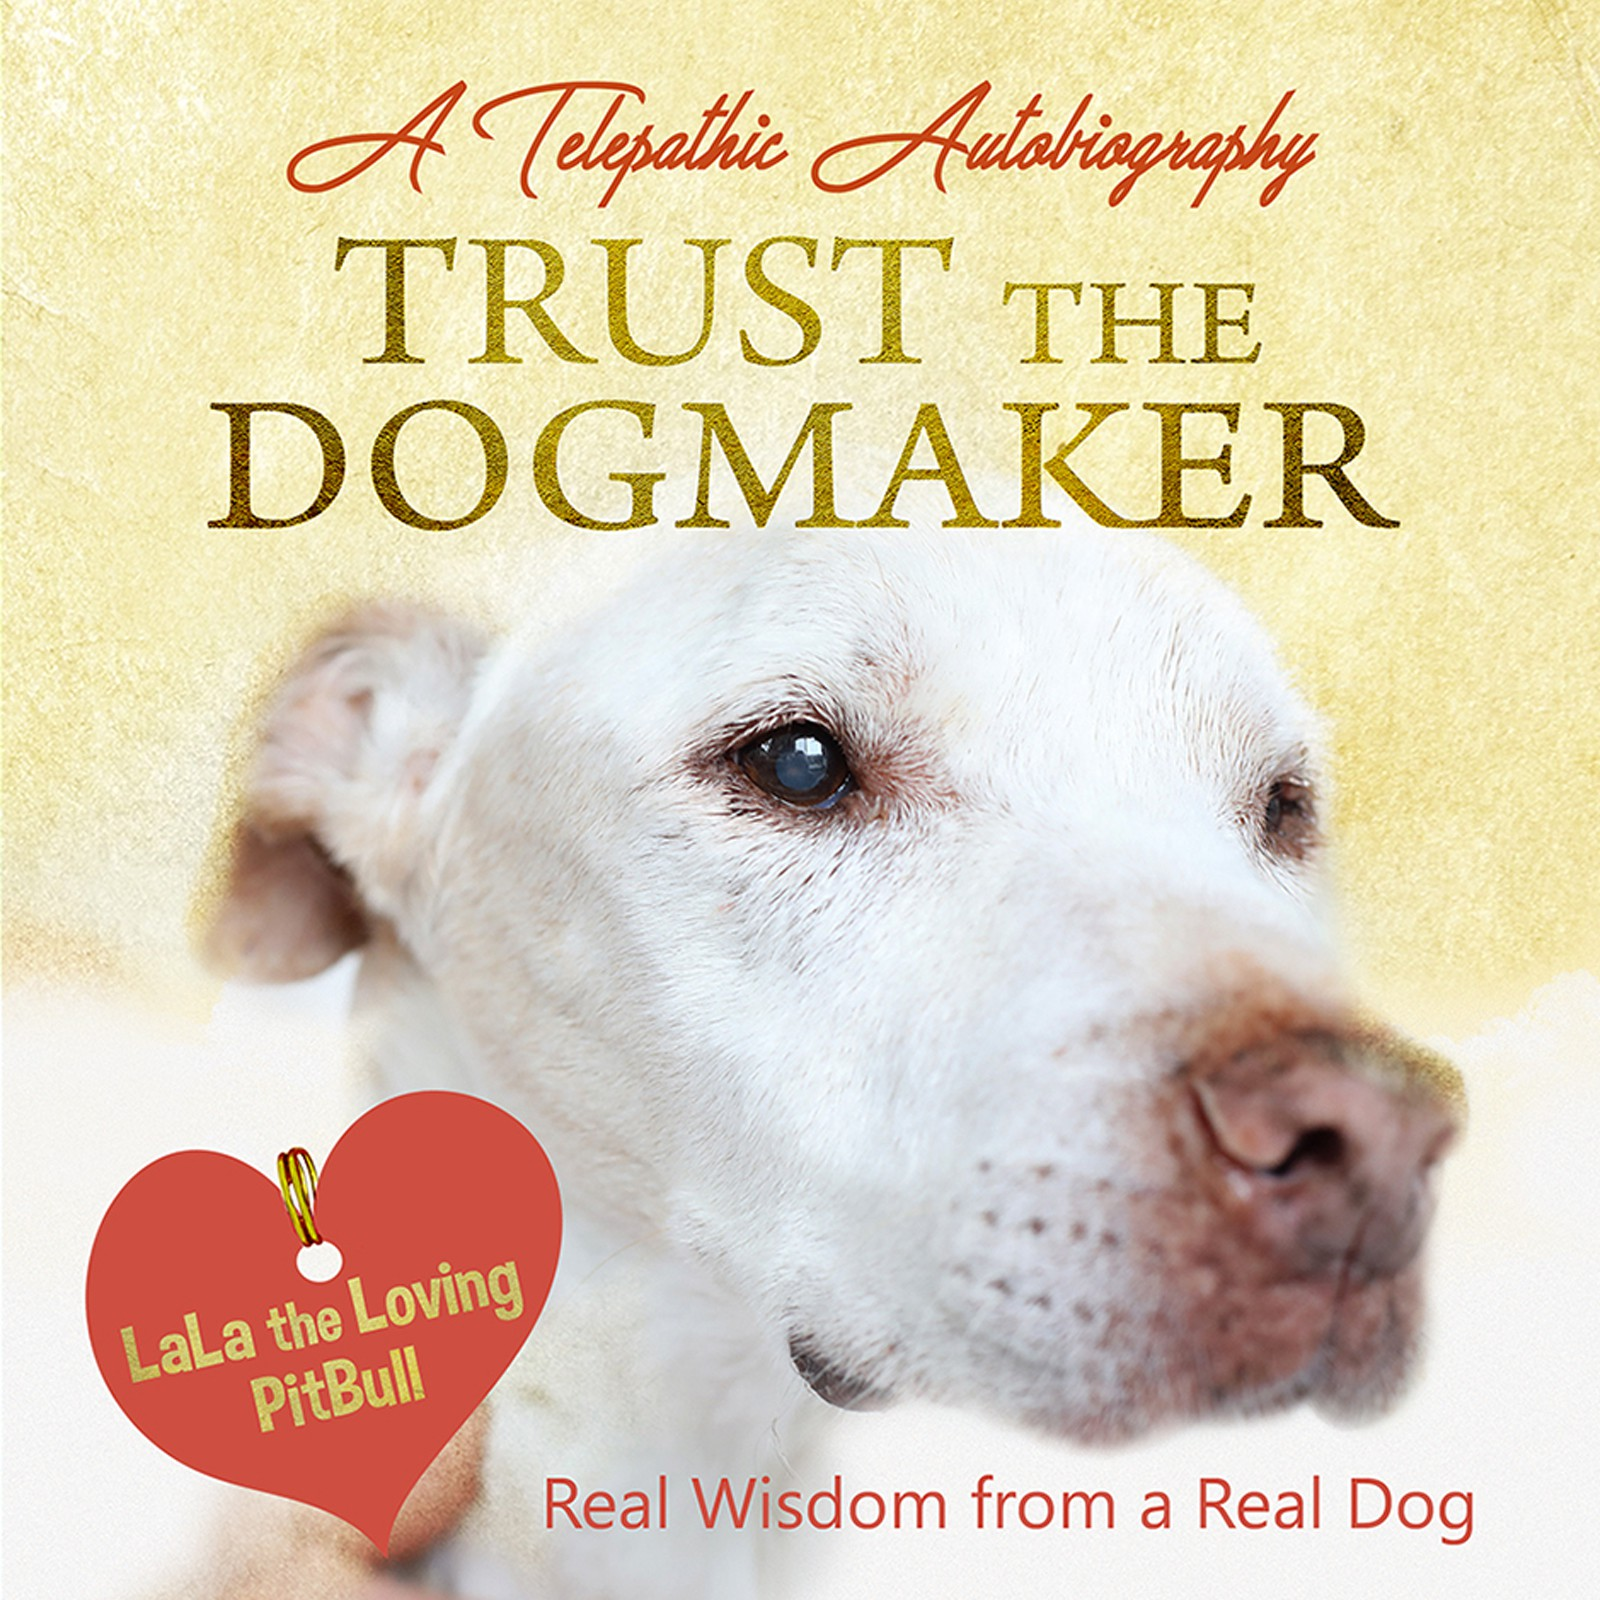 Design the cover of the first ever REAL autobiography by a REAL dog!